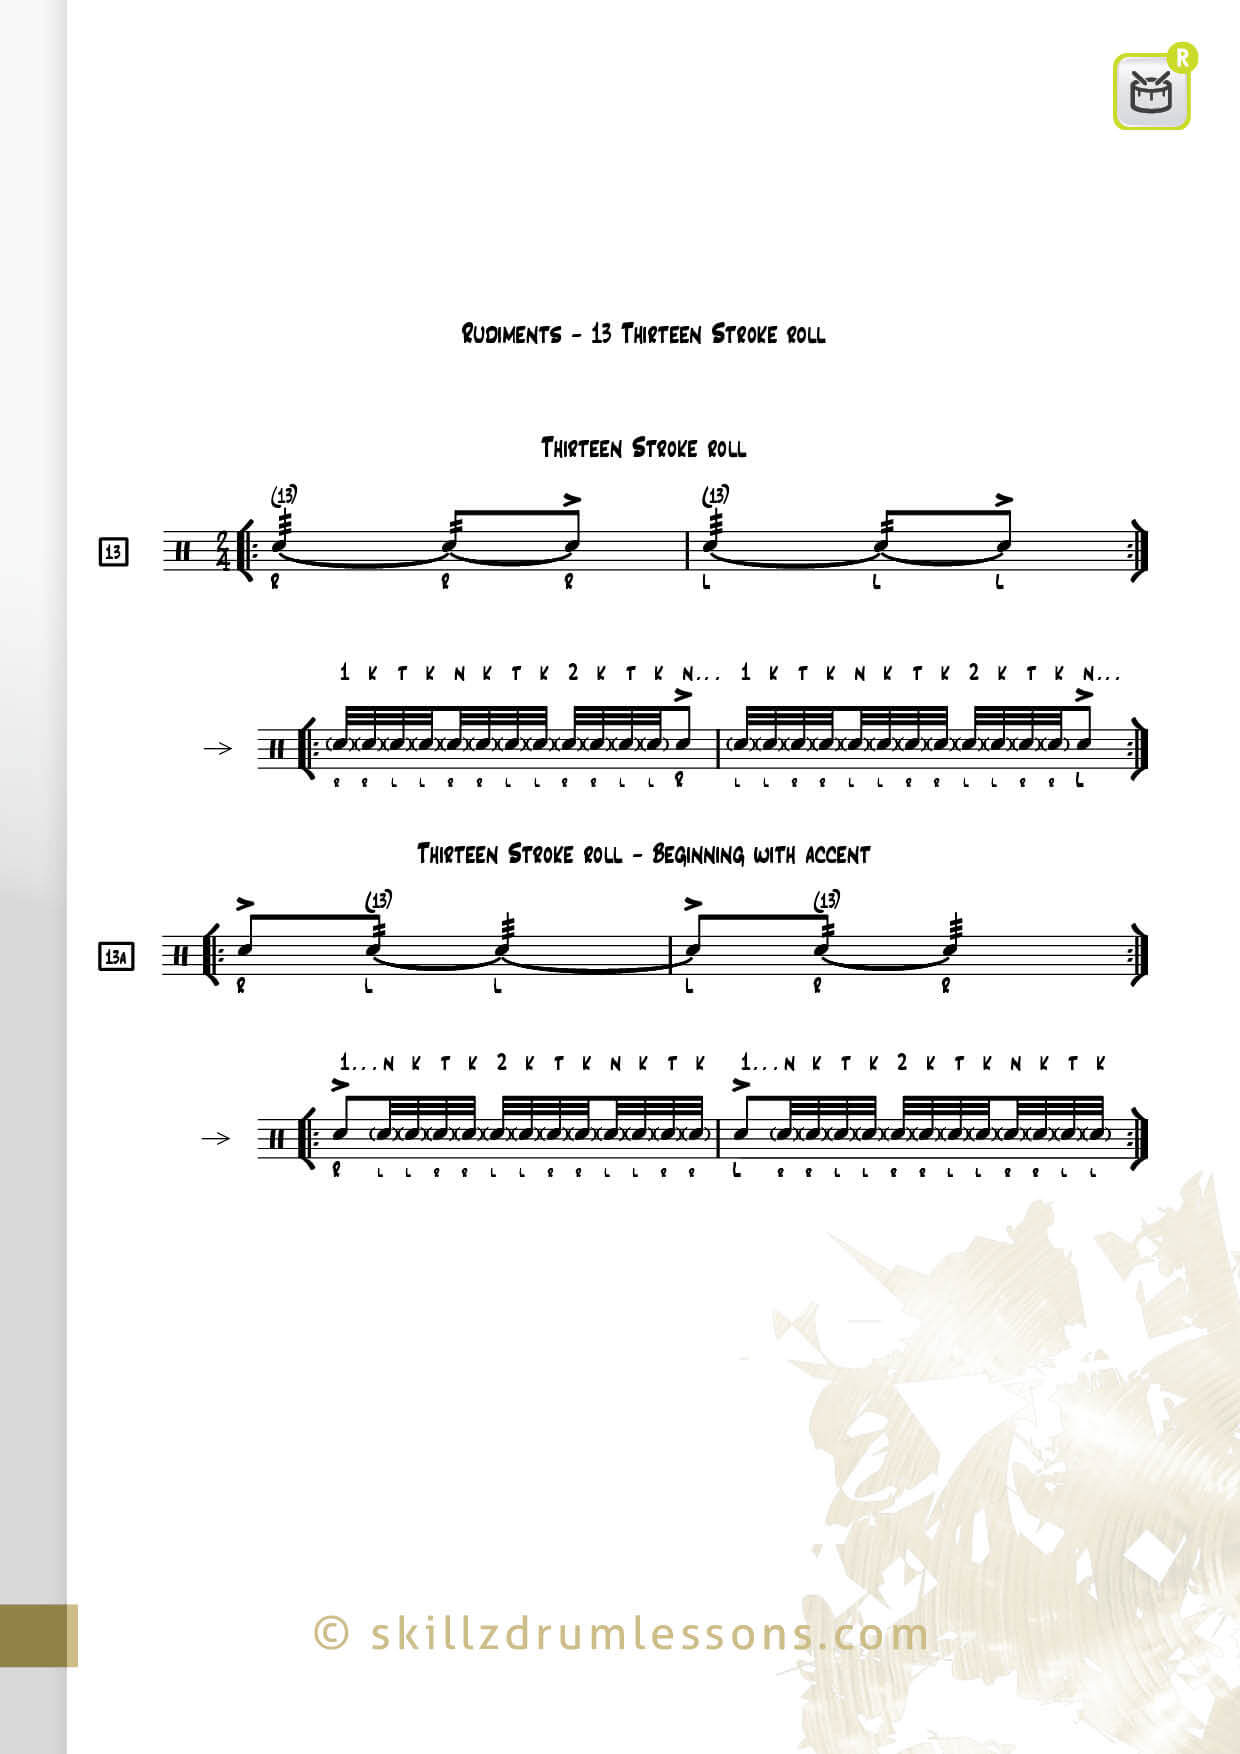 This is an image of the Official 40 Essential P.A.S. Rudiments #13 The Thirteen Stroke Roll by Skillz Drum Lessons